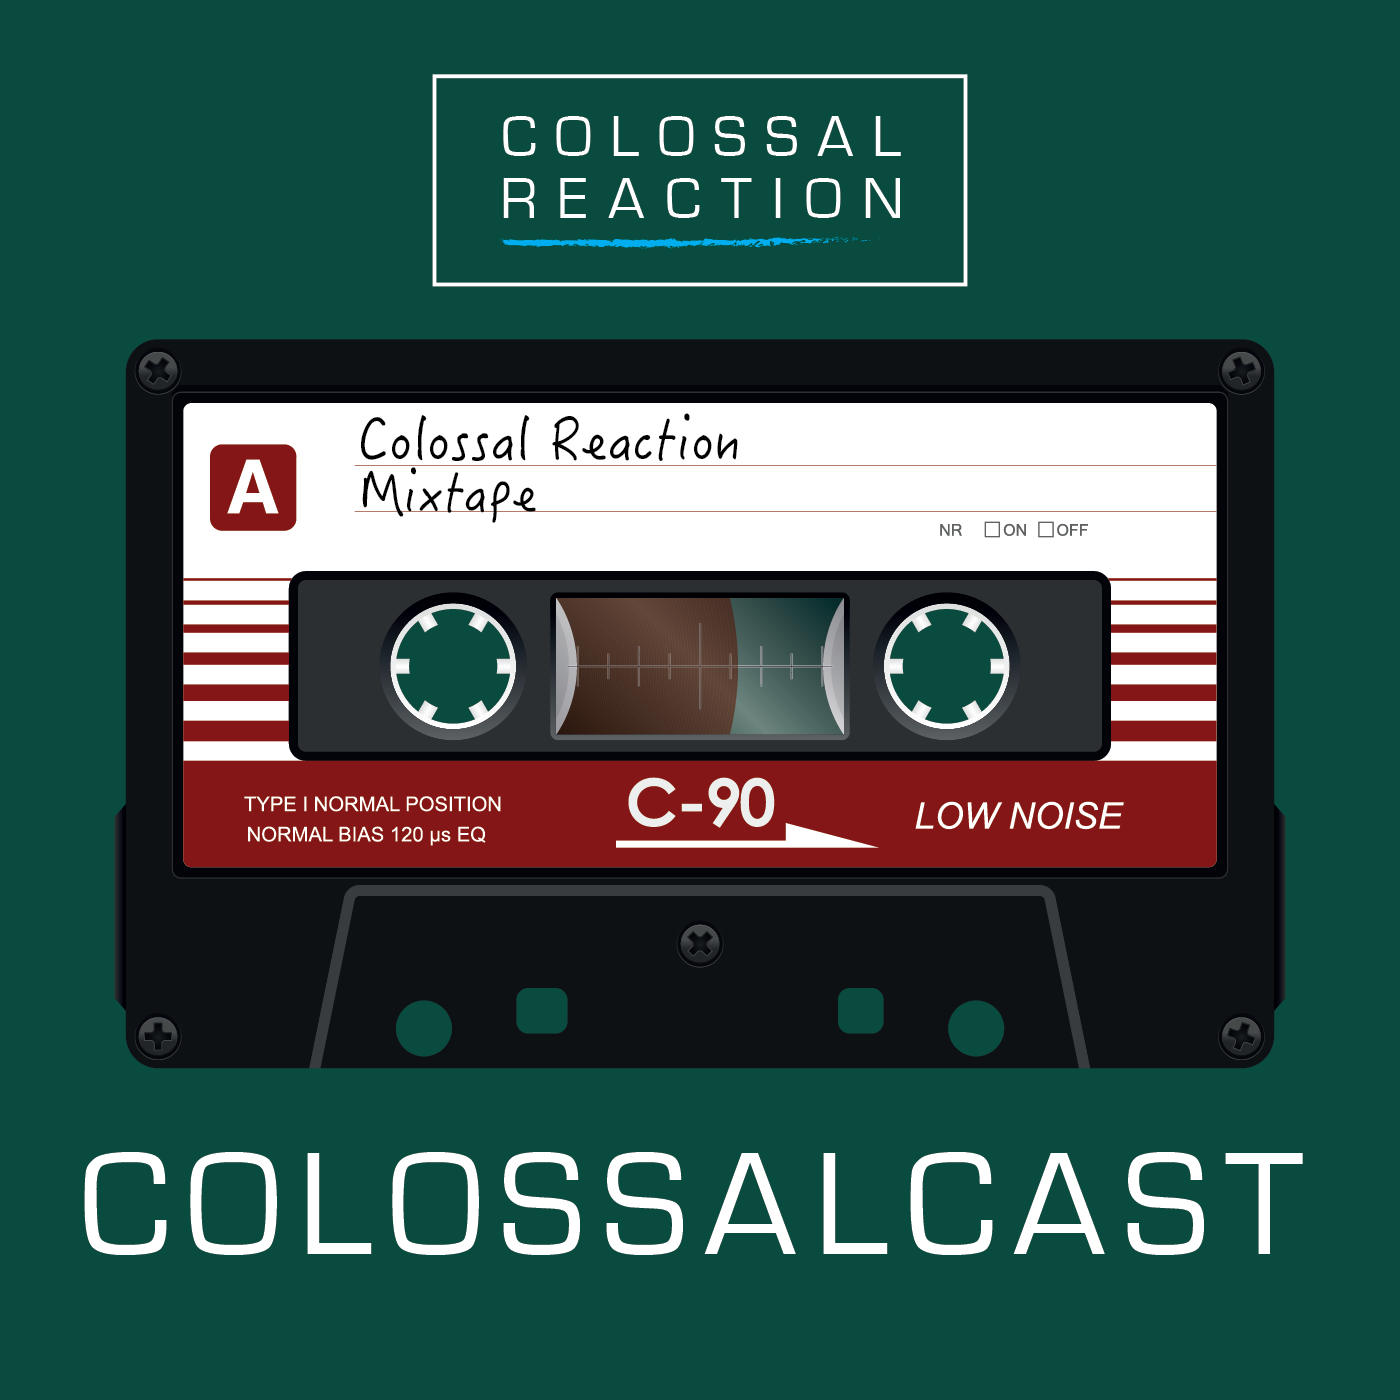 COLOSSALCAST Episode 4